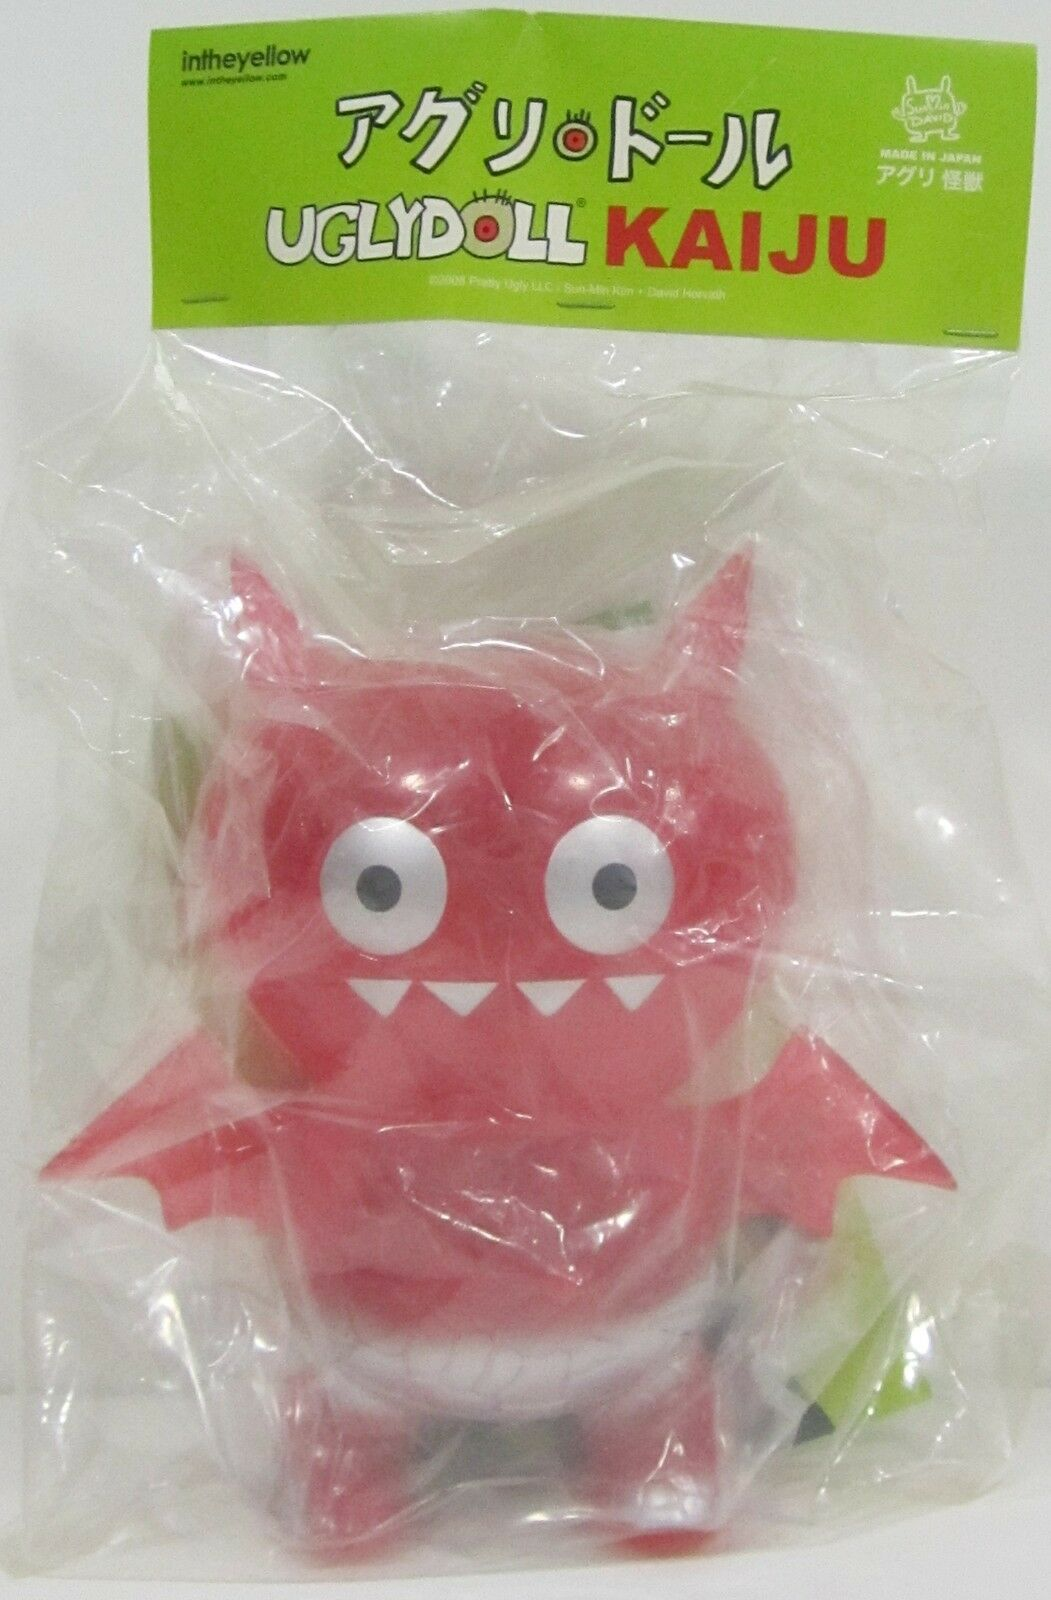 CLEAR RED Exclusive ICE-BAT Kaiju KFGU Vinyl UGLYDOLL  ONLY 100 MADE  VERY RARE